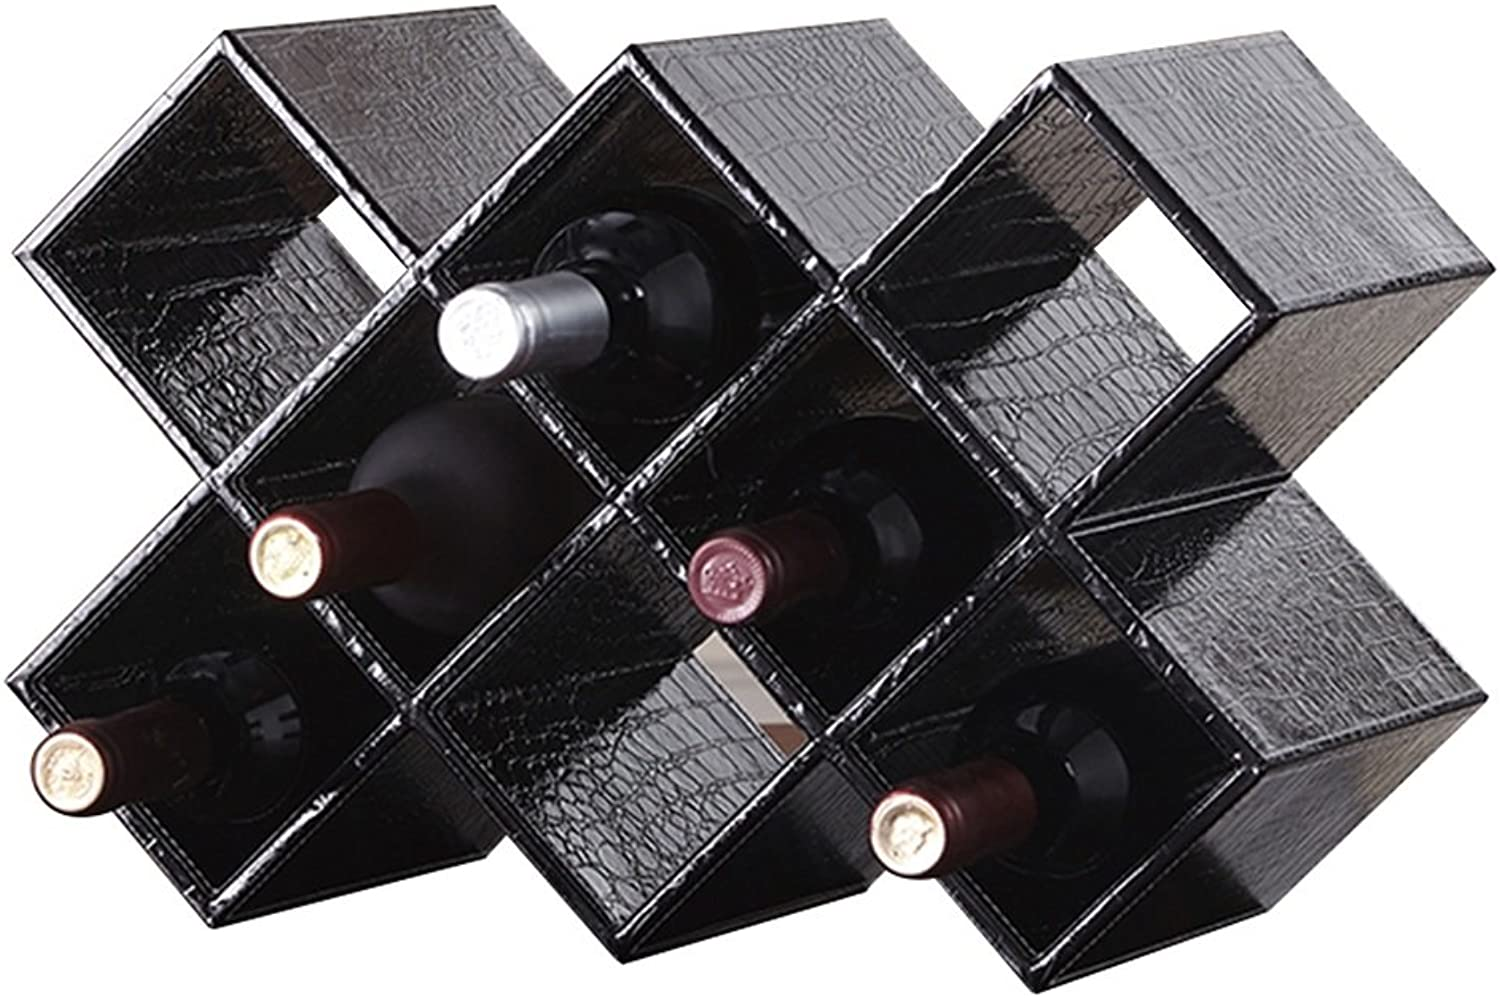 Wood Wine Rack Free Standing Wine Cabinet Wine Bottle Holder Decorative Shelves Beautiful and Durable (Size 41.5  20  28cm) (color   Black)